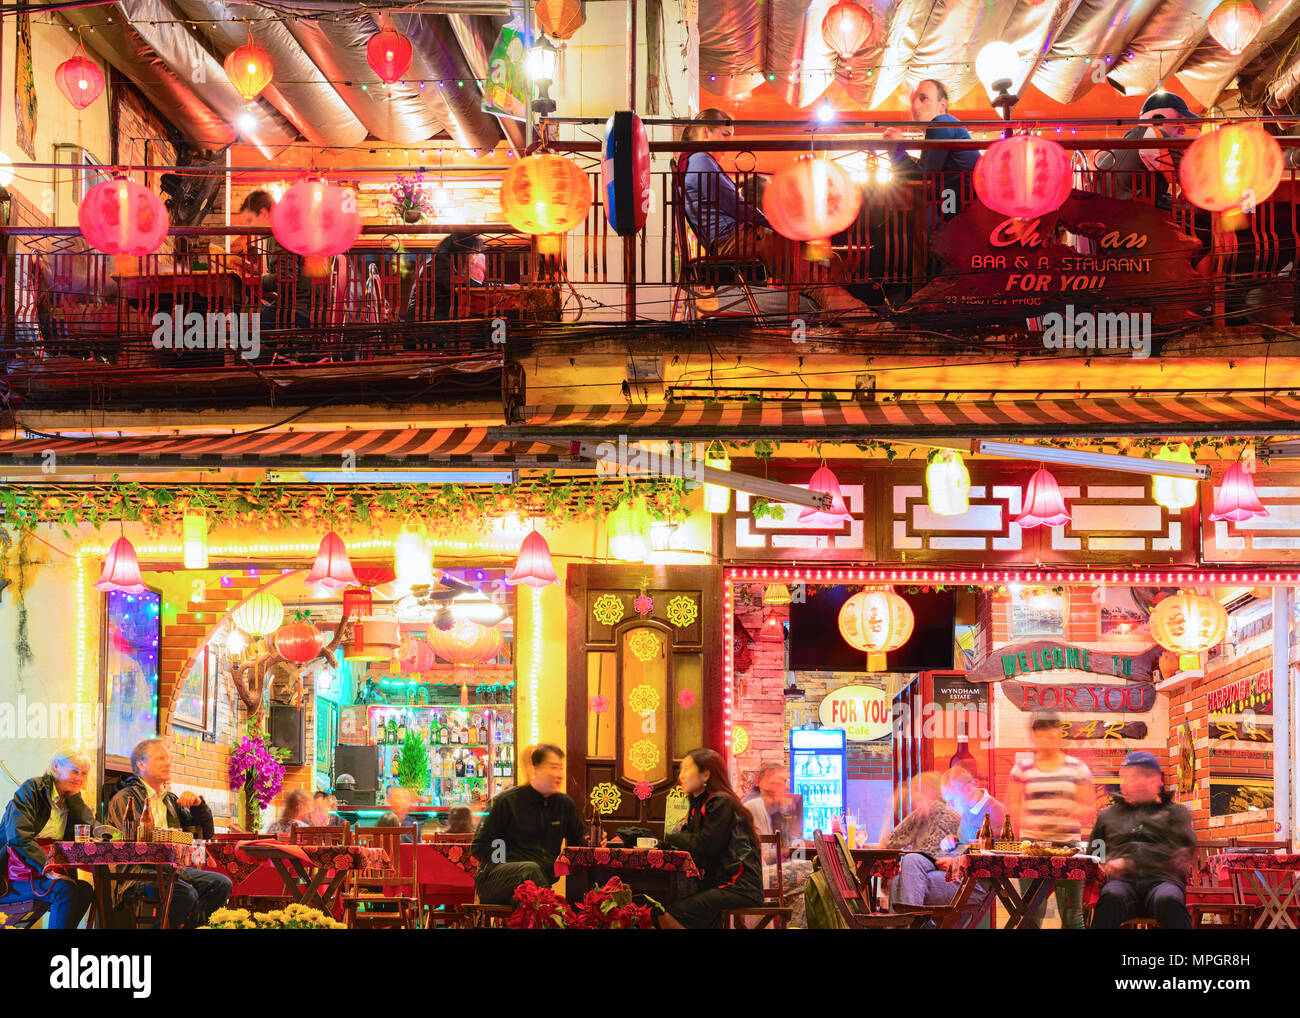 Hoi An, Vietnam - February 17, 2016: People at the street restaurant in Hoi An, Vietnam. Late in the evening Stock Photo